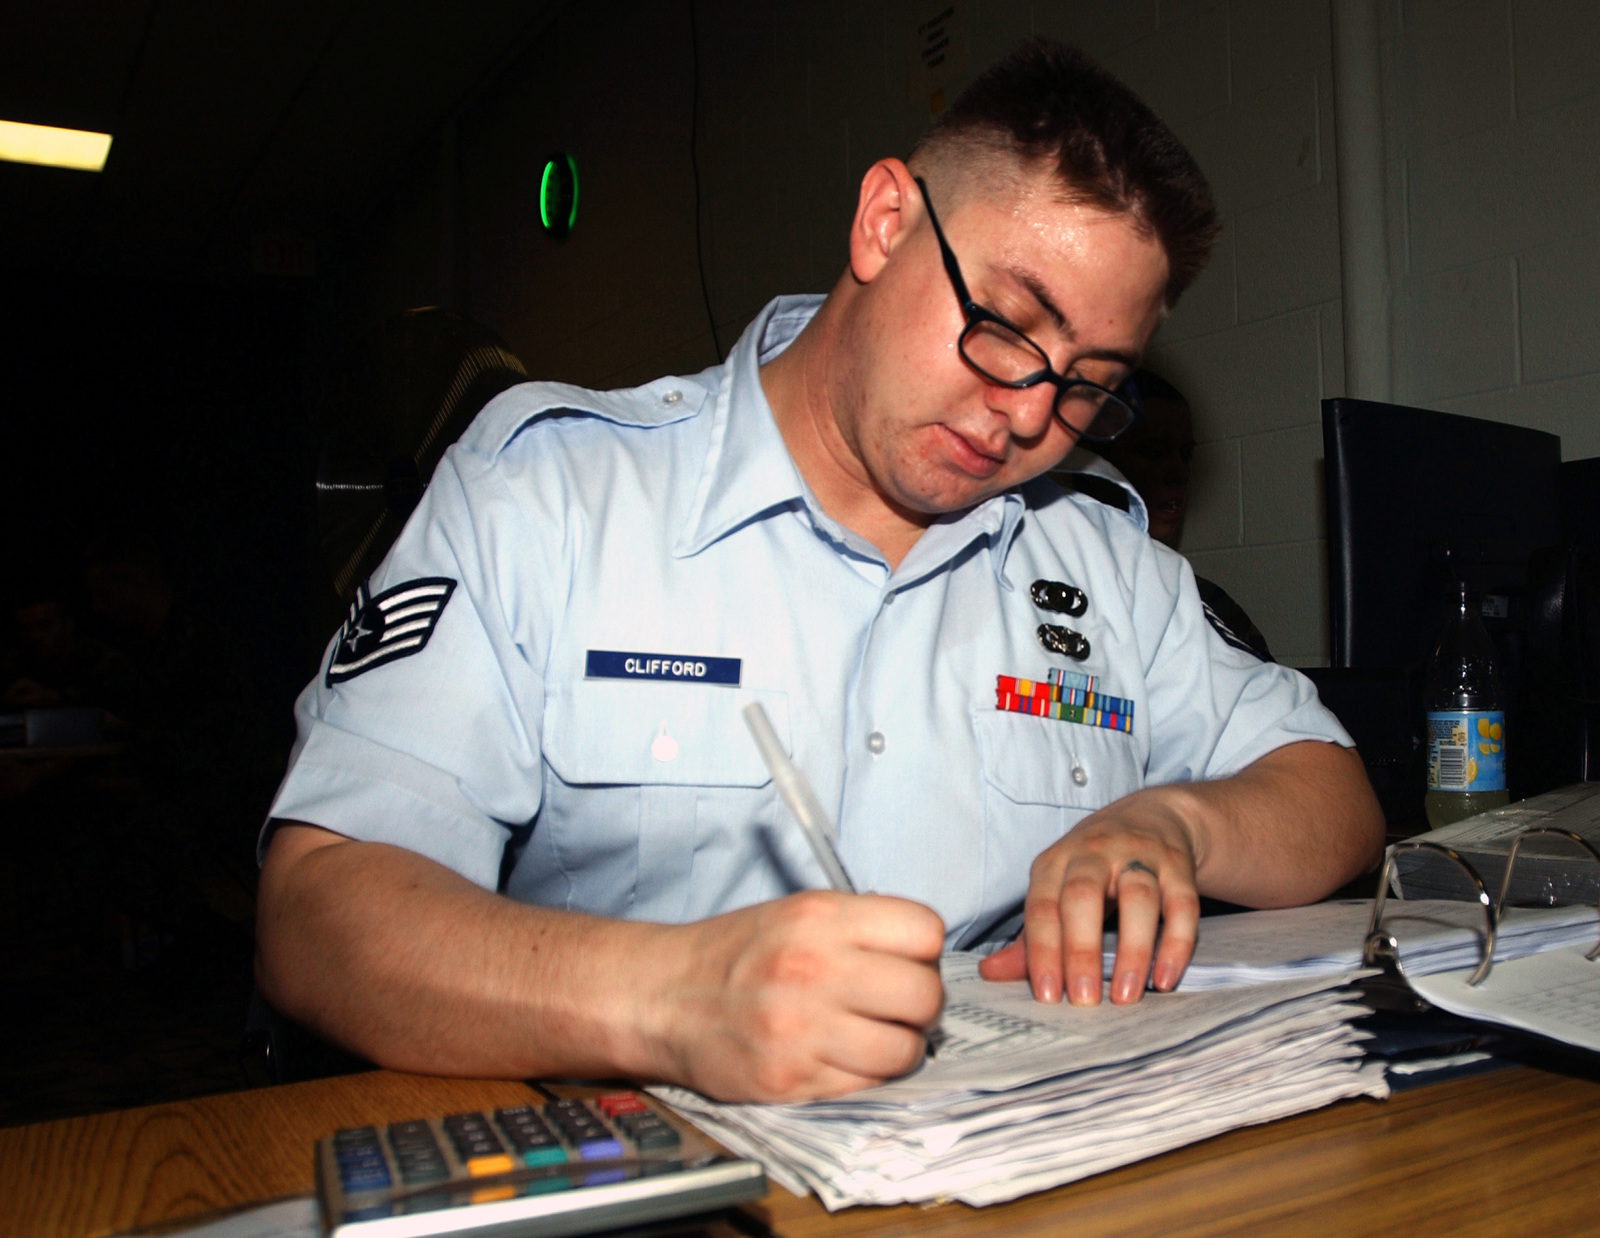 US Air Force (USAF) STAFF Sergeant (SSGT) Joshua Clifford, 99th Comptroller Squadron (CPTS), Nellis Air Force Base (AFB), Nevada (NV), TDY (Temporary Duty) to Langley AFB with the 1ST CPTS lends a helping hand handling the many claims and travel vouchers coming through their offices due to the evacuation because of Hurricane Isabel